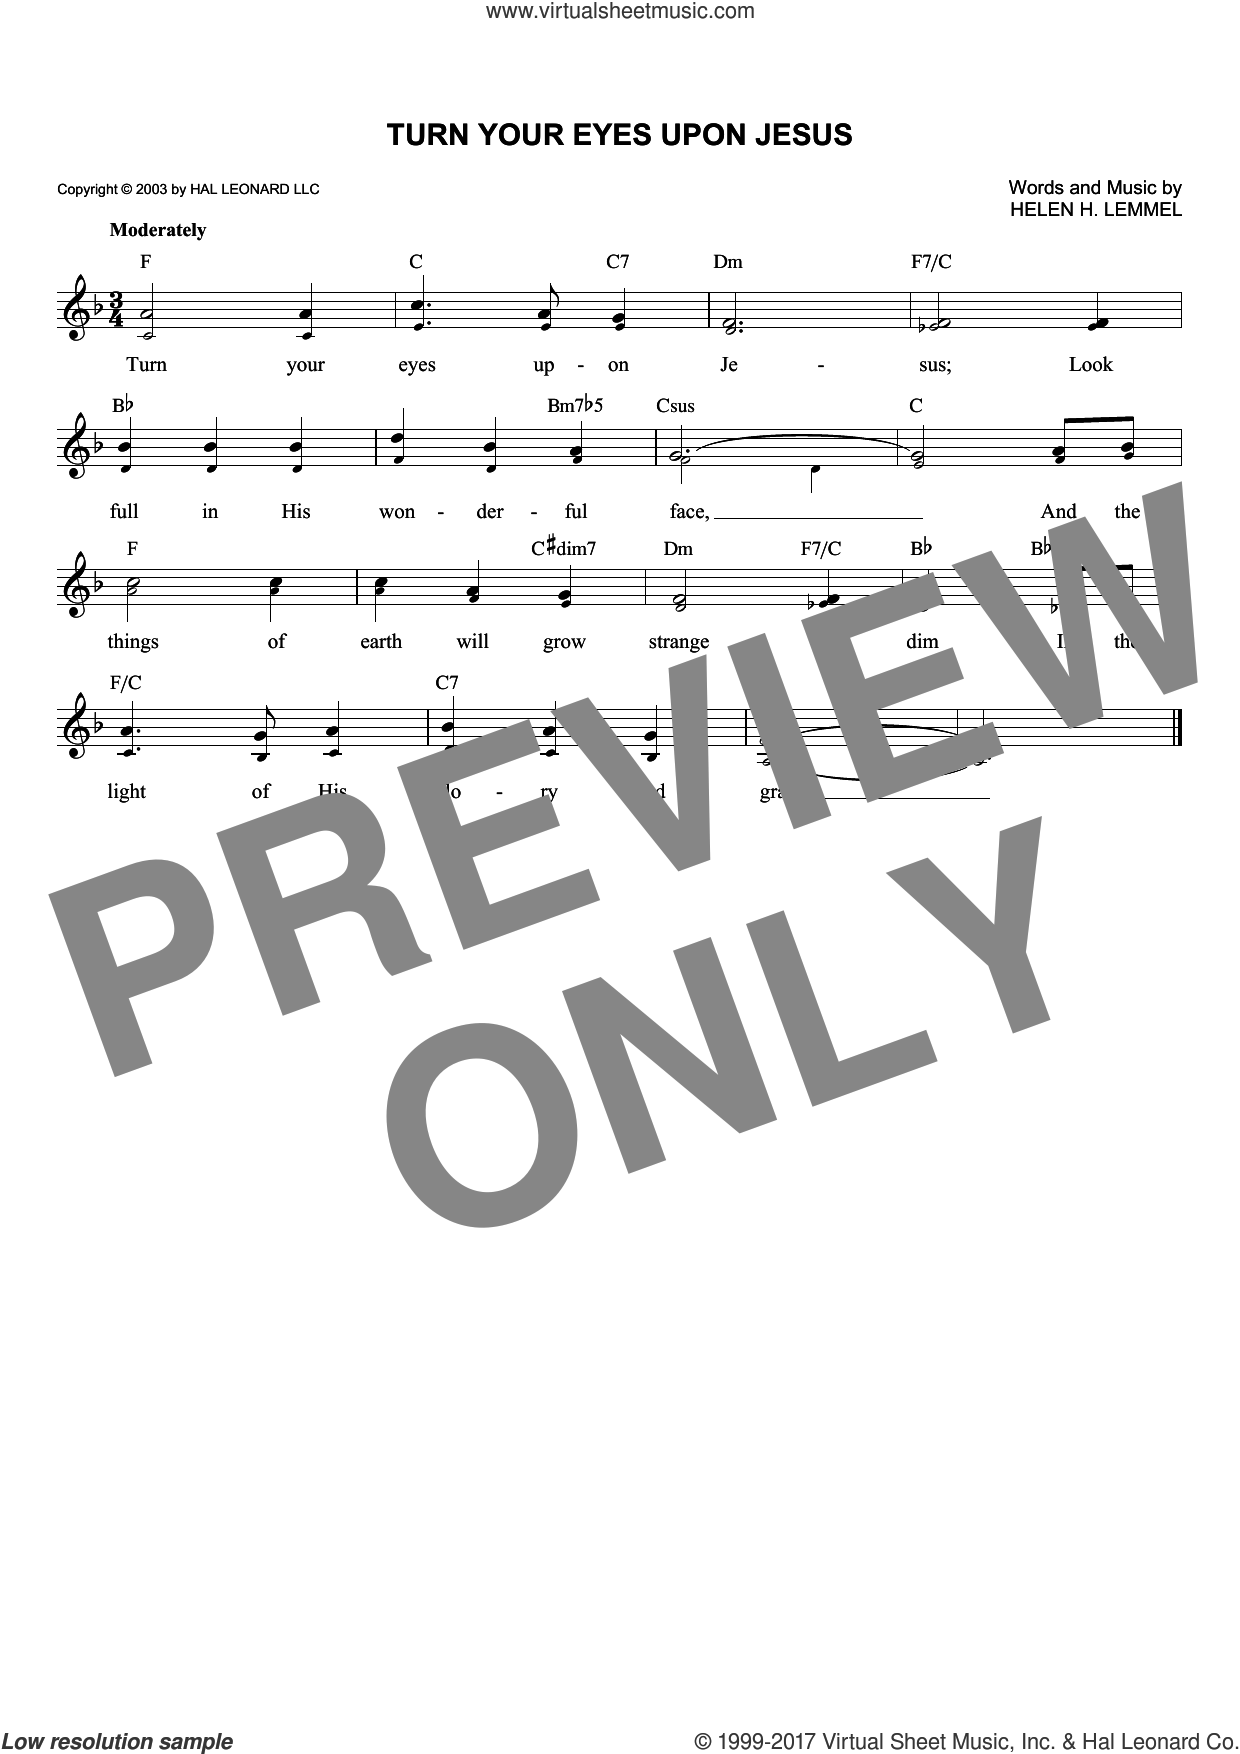 Turn Your Eyes Upon Jesus sheet music for voice and other instruments (fake book) by Newsboys and Helen H. Lemmel, intermediate skill level